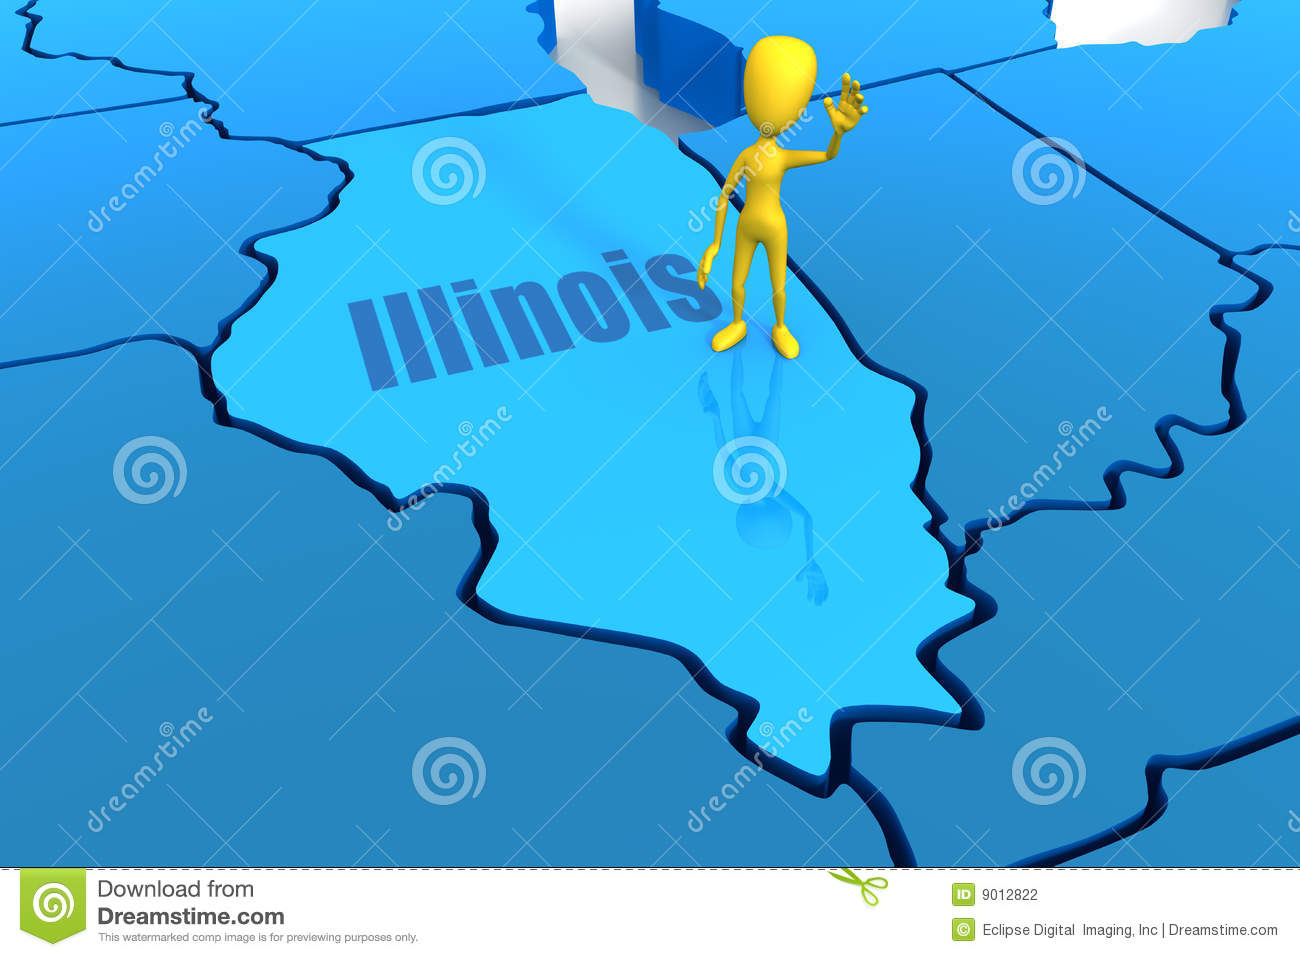 Illinois State Outline With Yellow Stick Figure Stock